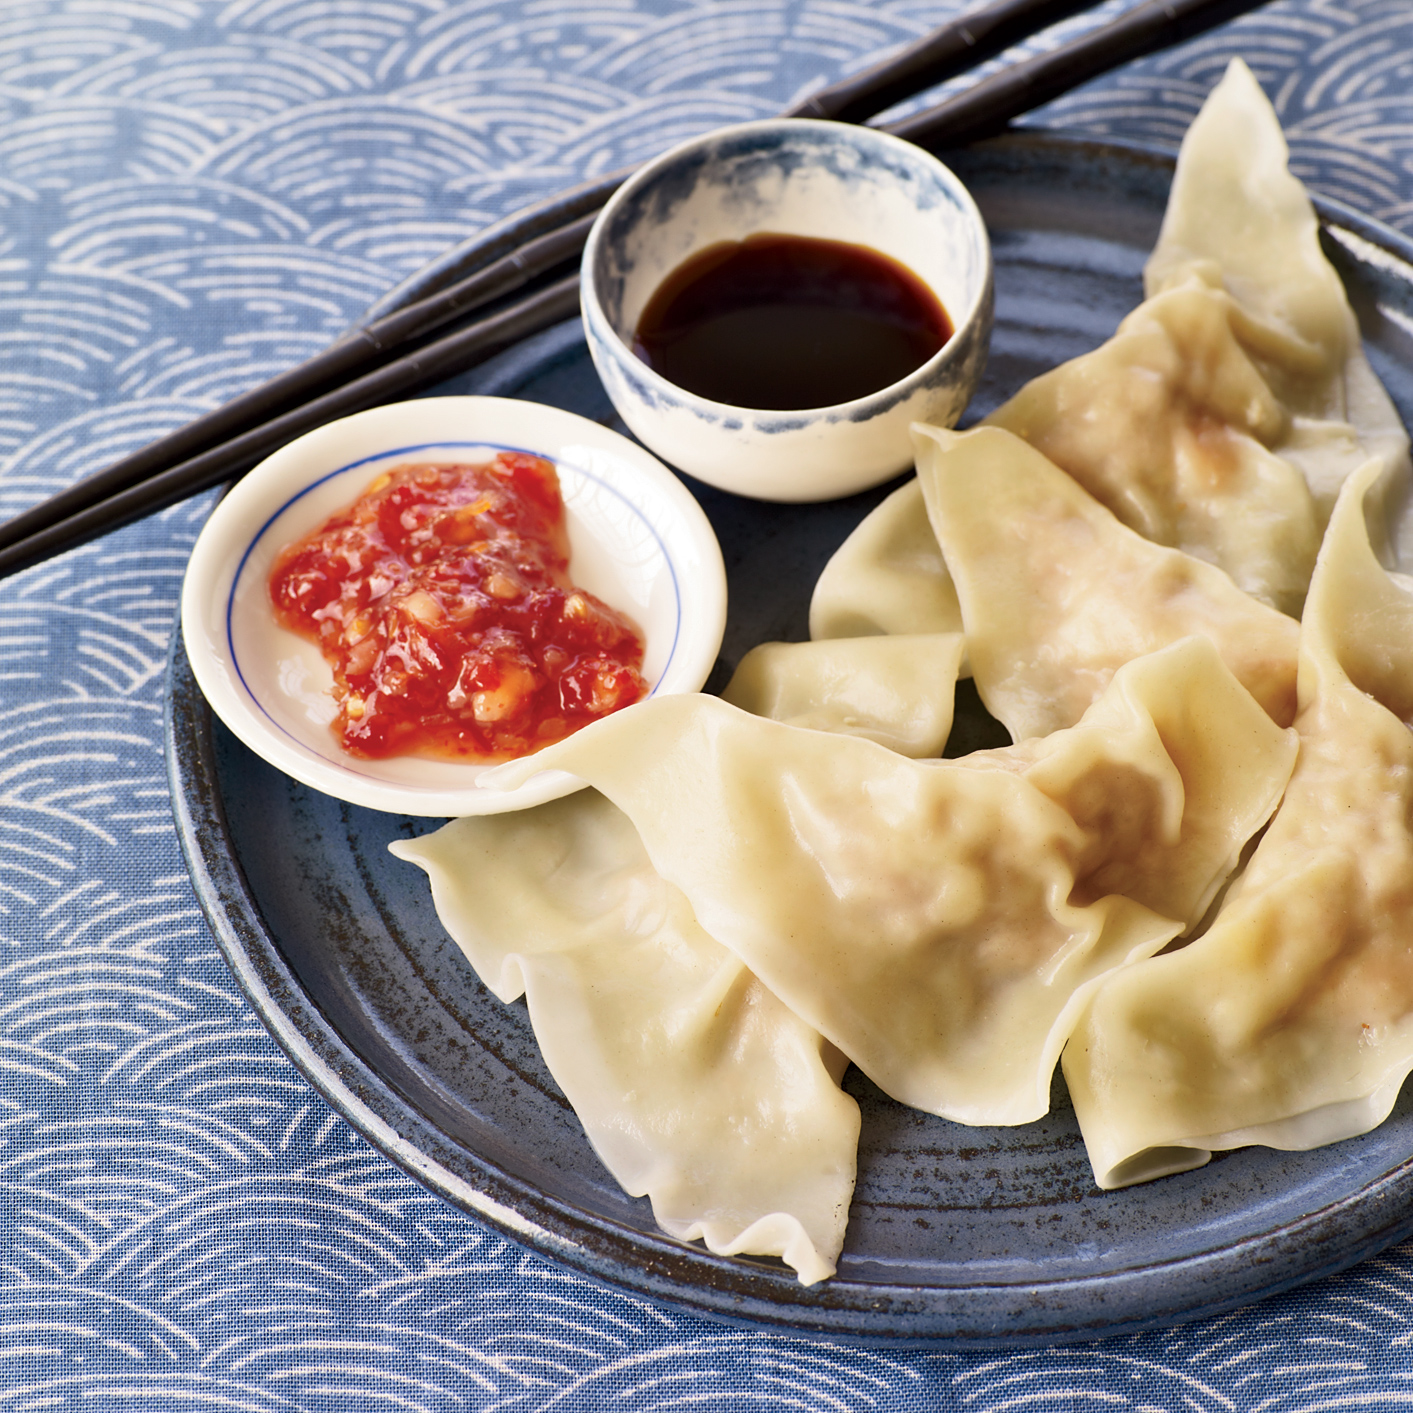 images-sys-201201-r-shrimp-and-pork-dumplings-with-bamboo-shoots.jpg